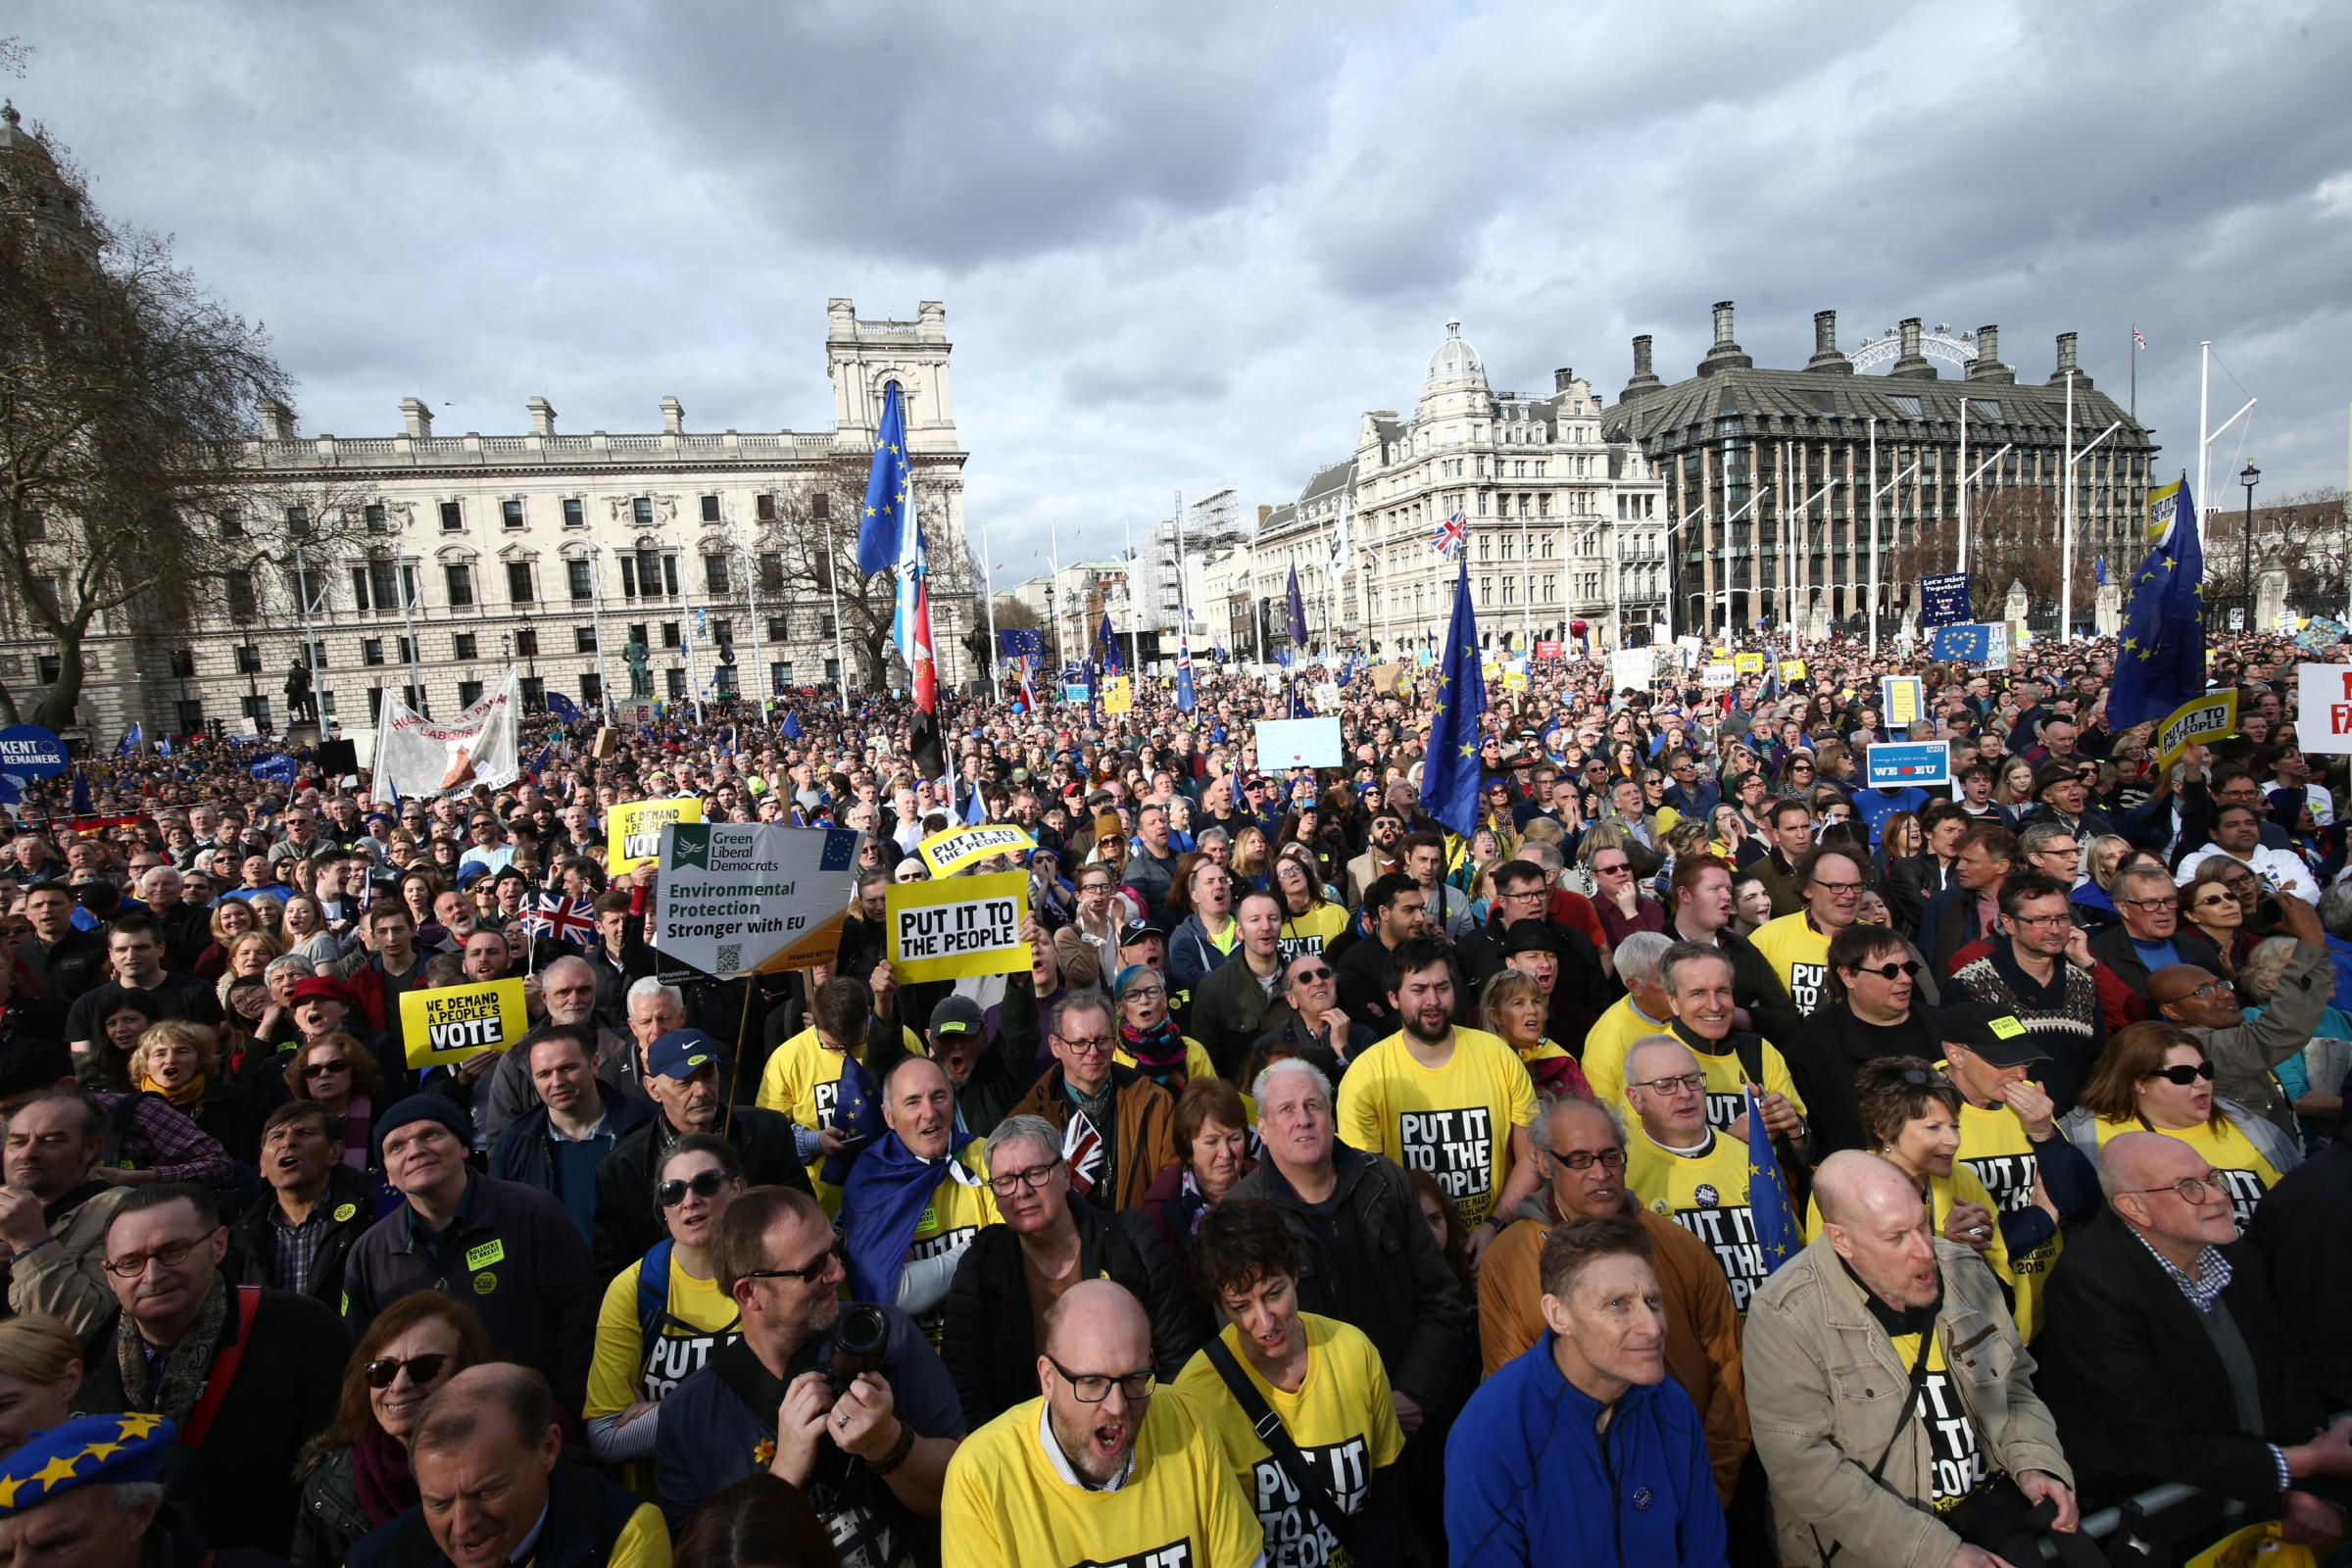 DEMONSTRATION: Anti-Brexit campaigners gather in Parliament Square, as they take part in the People's Vote March in London. PICTURE: Yui Mok/PA Wire